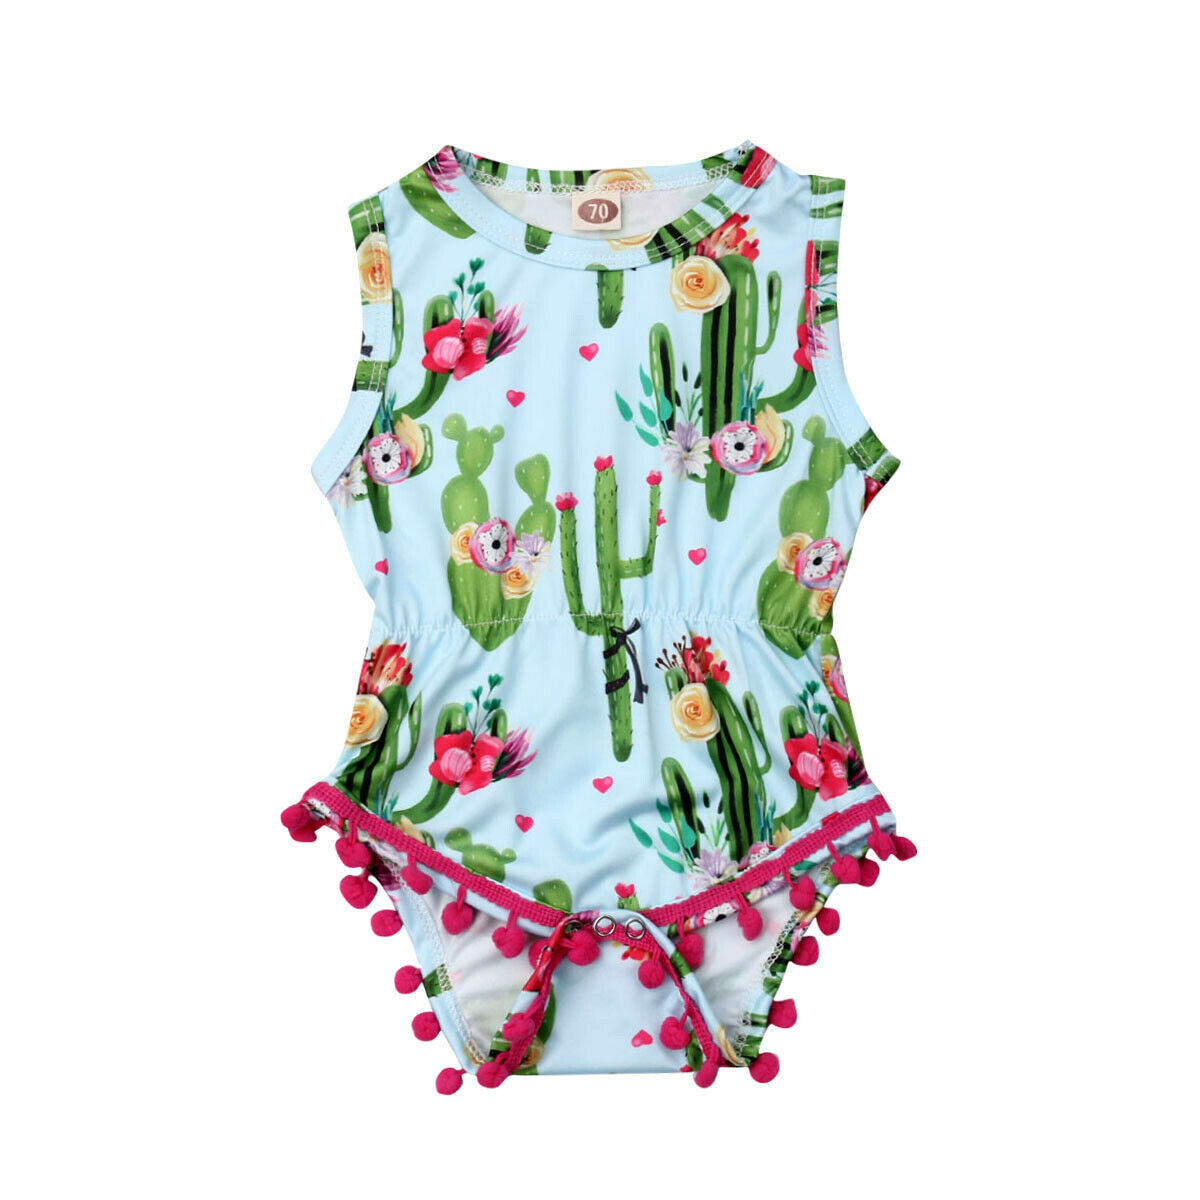 0-24M Cute Newborn Baby Girl Sleeveless Cactus Floral Tassel Ball   Romper   Jumpsuit Outfits Summer Clothes